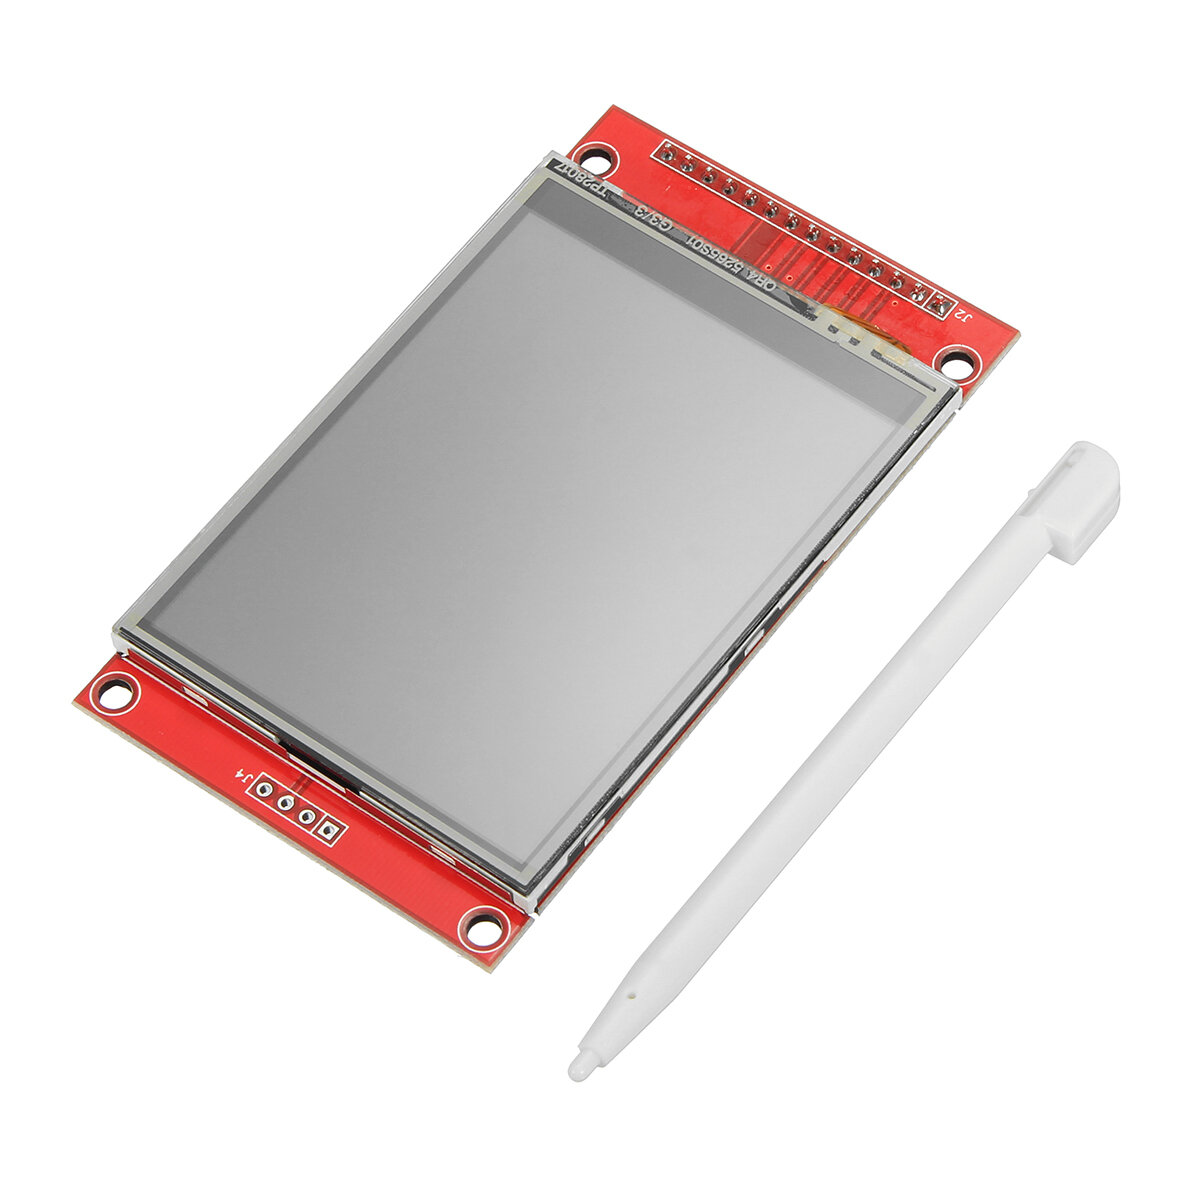 2,8 inch ILI9341 240x320 SPI TFT LCD Display Touch Panel SPI Seriële Port Module